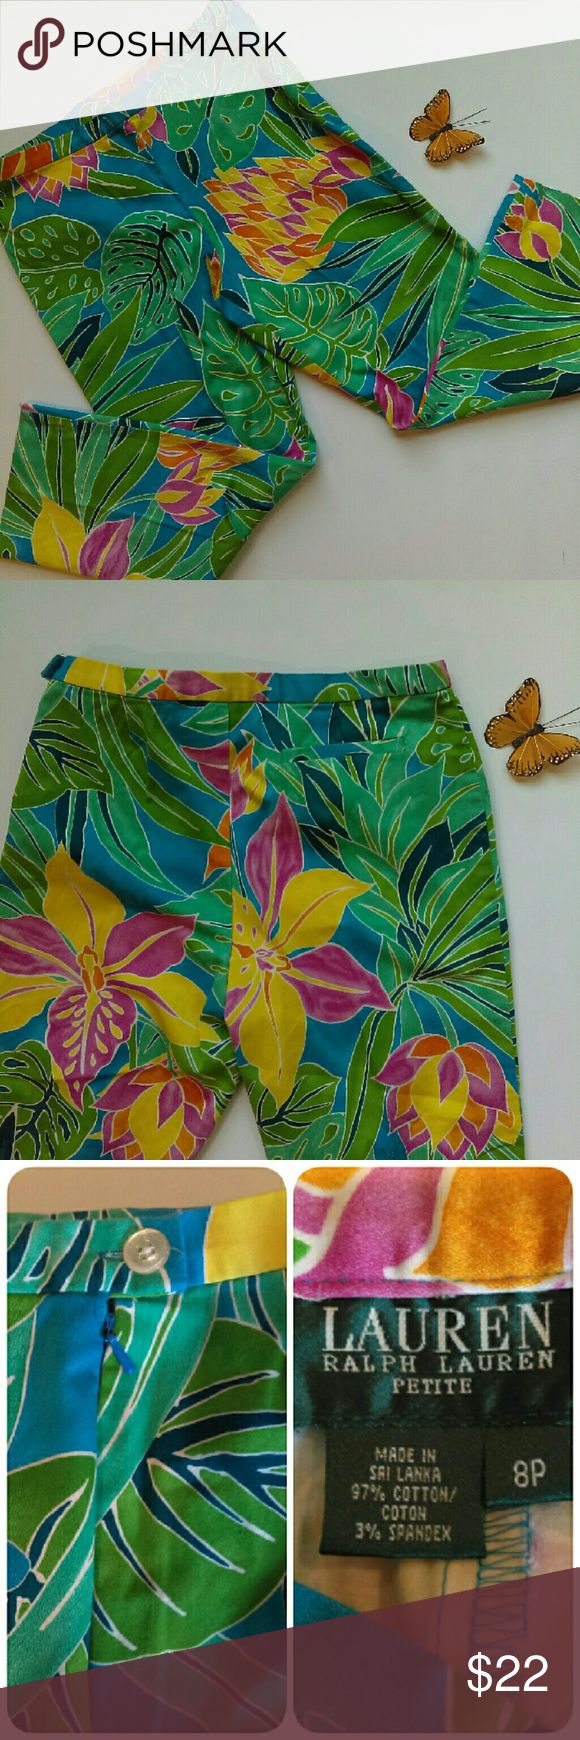 Ralph Lauren - flower capris EUC. Like new. Only worn a couple of times. These will work great for the lady whisking away on a cruise or spending a vacation in Hawaii! Very tropical and cute. Be stylish any time of the year in these capris! Has a zipper and button on the side (see pic). From a smoke and pet free home. Fast shipping.   *I take offers on bundles  *All offers considered  *No trades  Happy Poshing Lauren Ralph Lauren Pants Capris